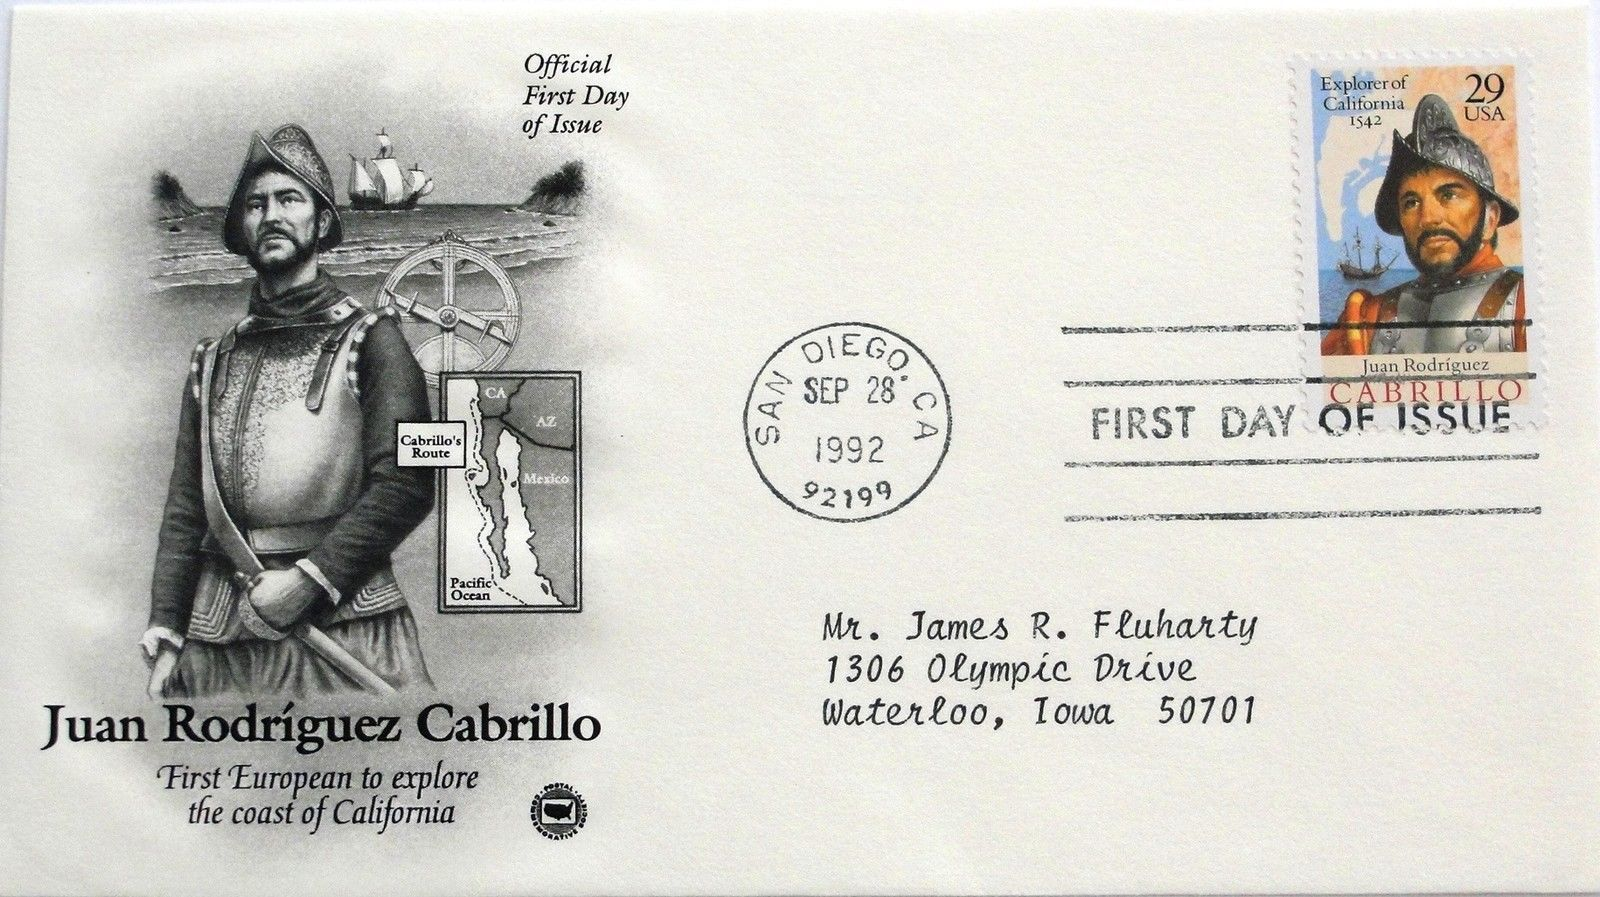 Sept. 28, 1992 First Day of Issue, PC Society Cover, Juan Rodriguez Cabrillo #31